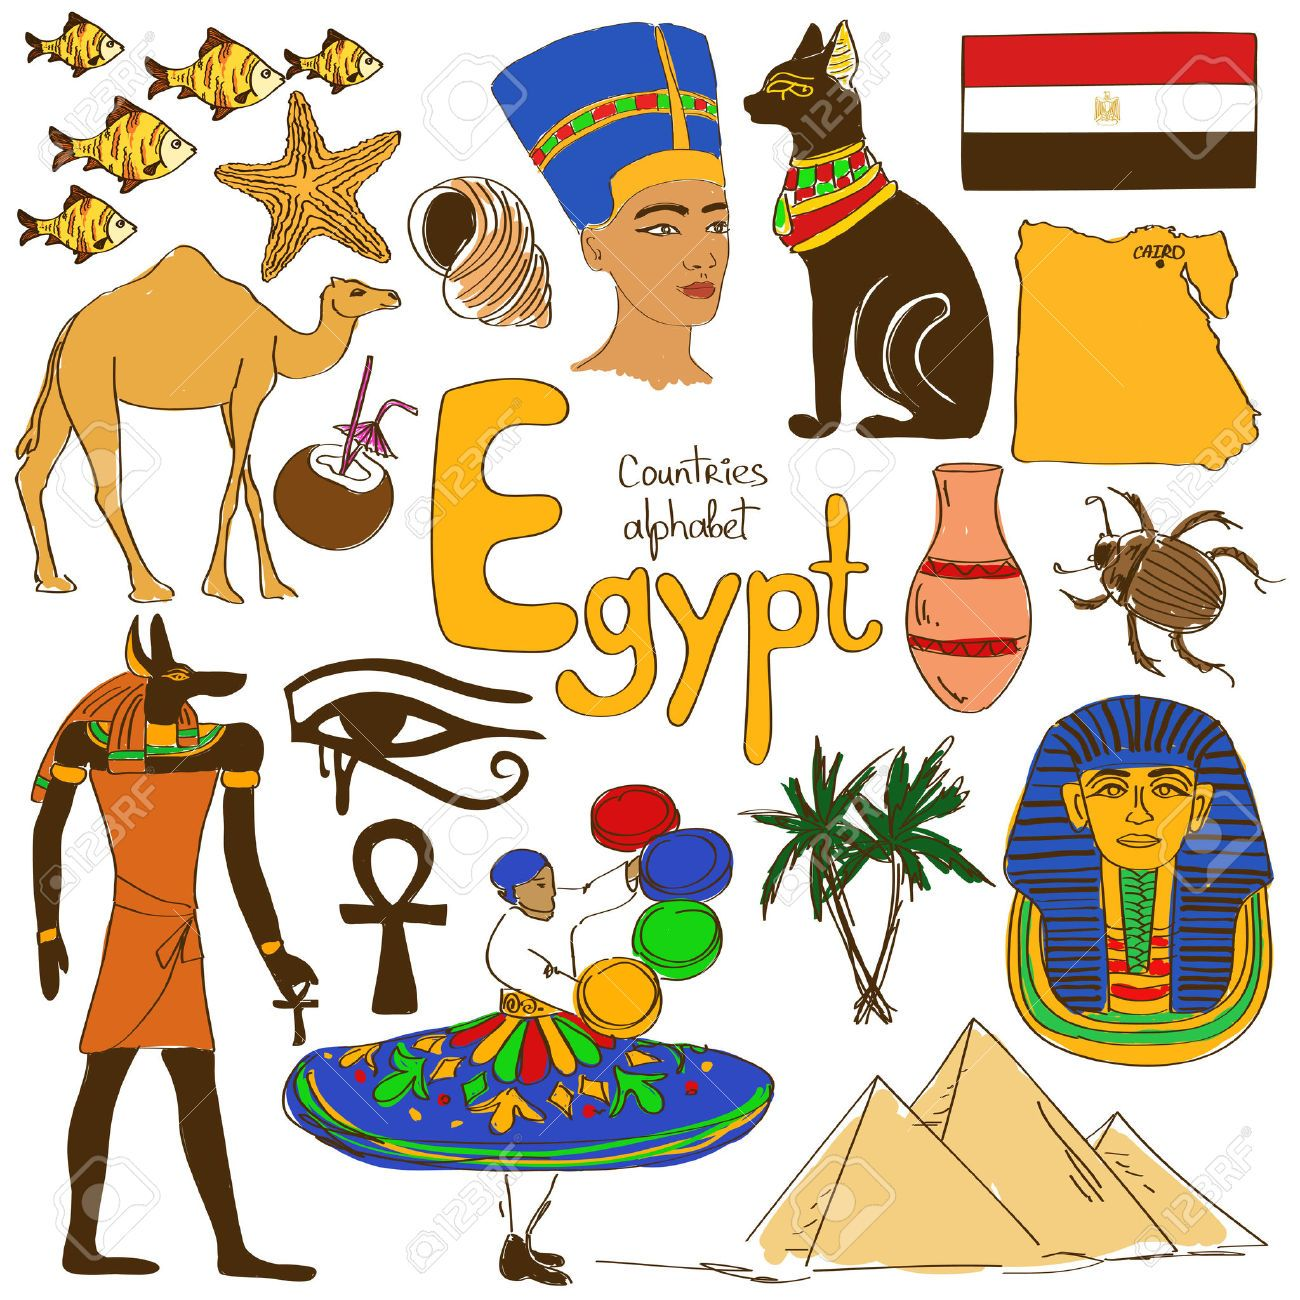 6th Egypt Geography Worksheet